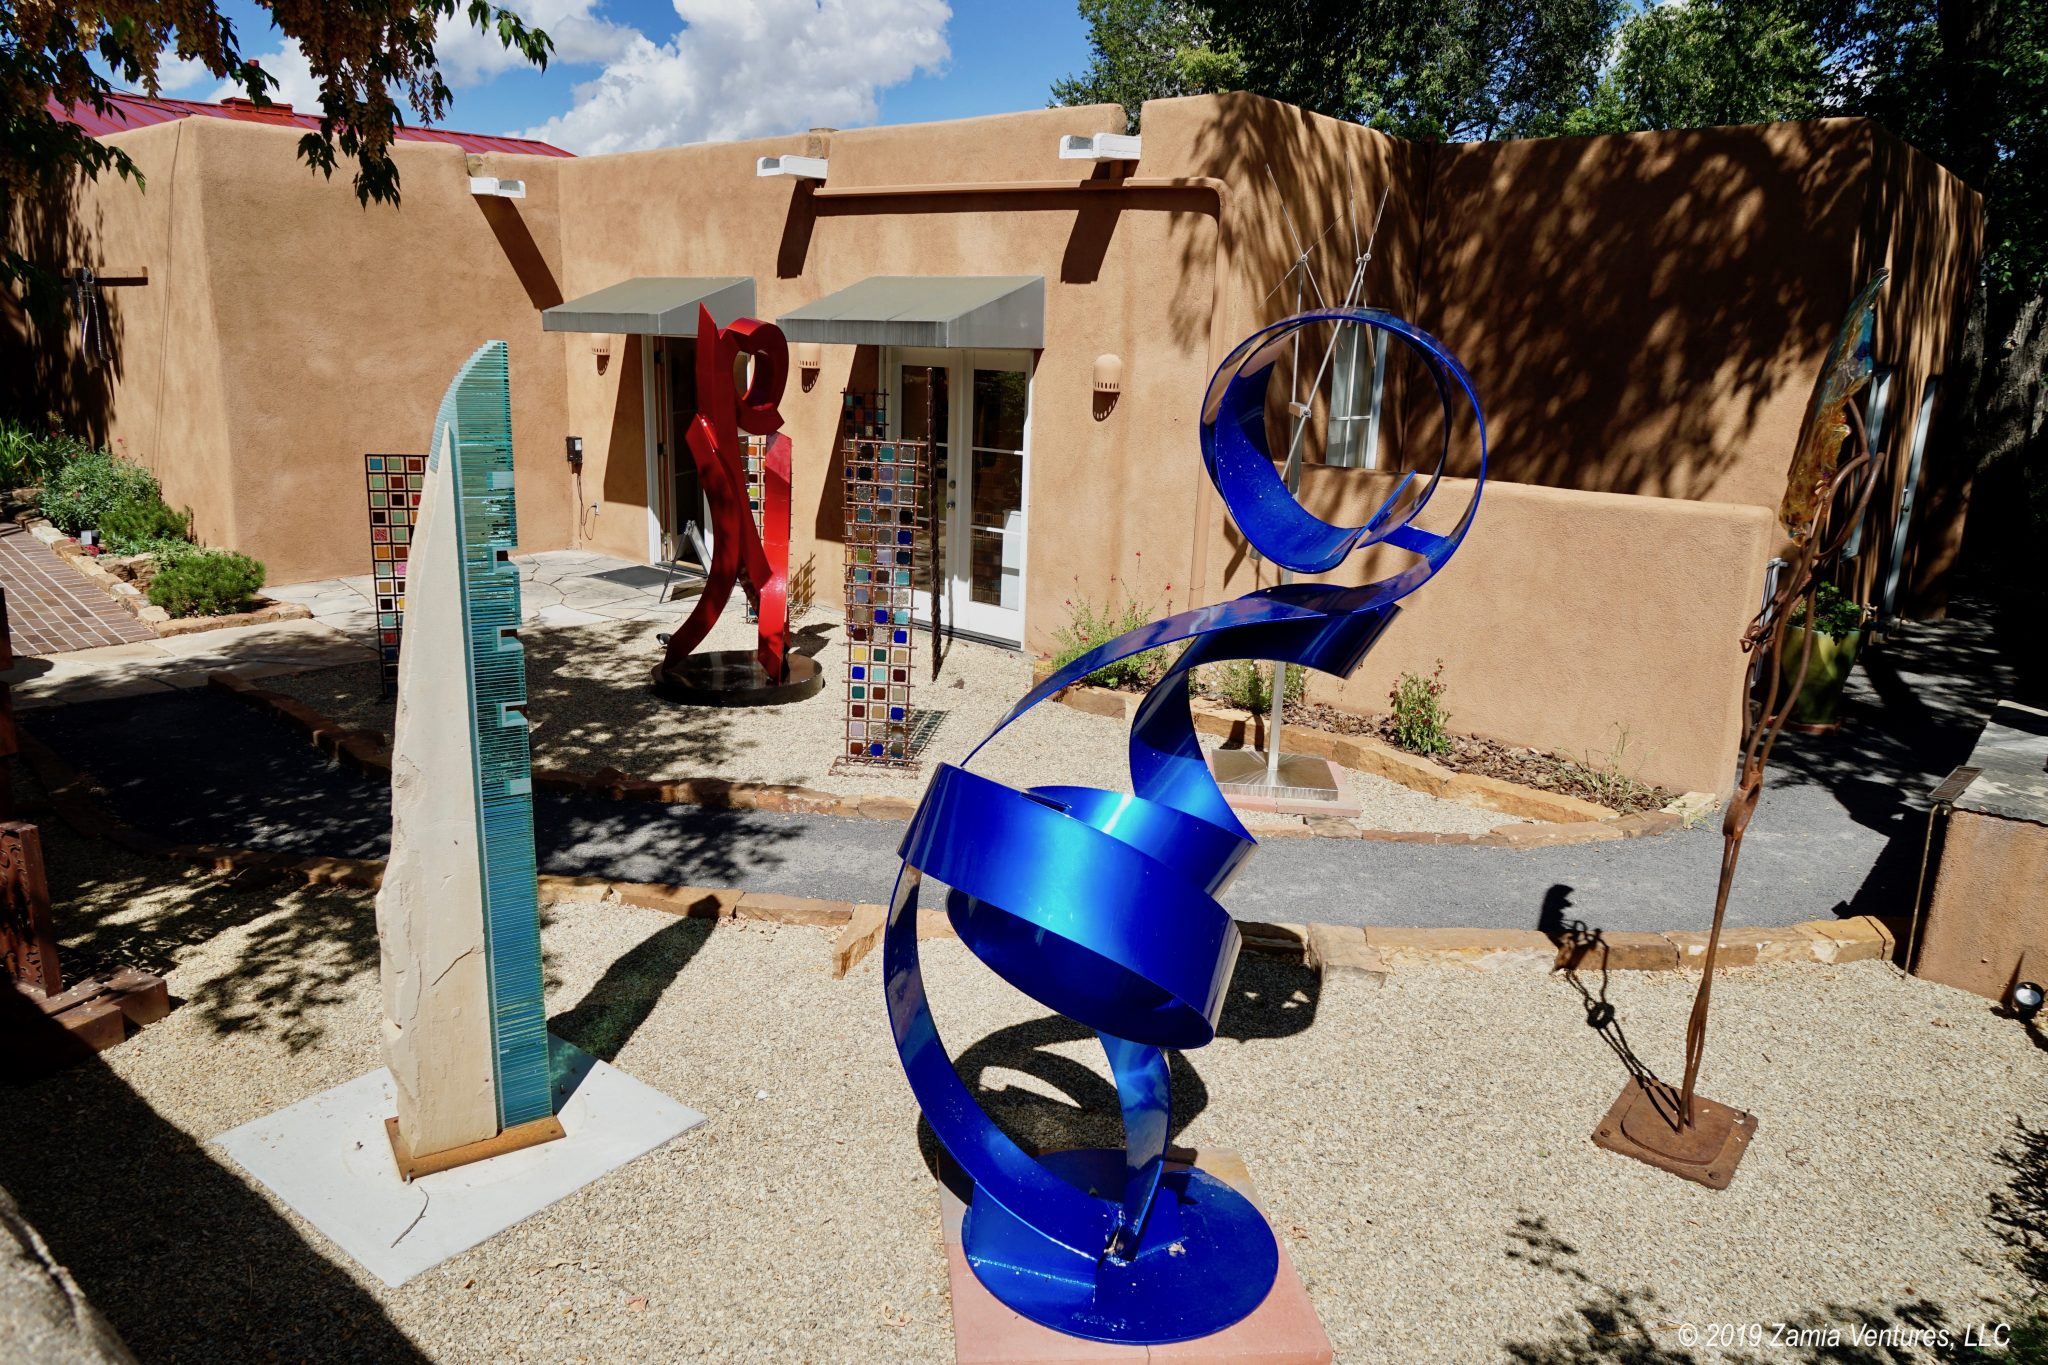 Art, Architecture, Art, History, and More Art in Santa Fe